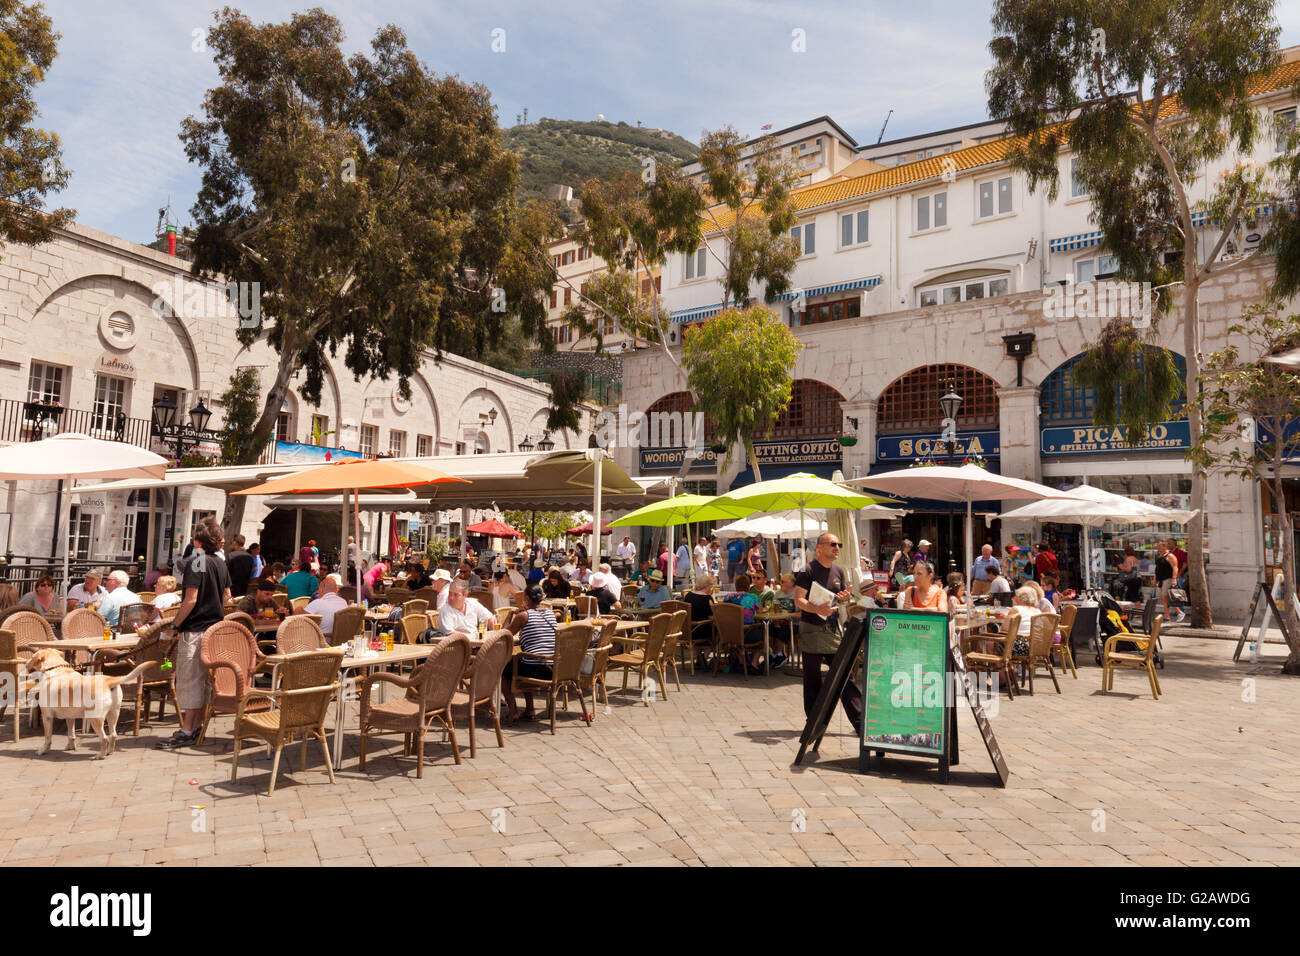 People sitting in cafes on a sunny day in spring, Casemates Square, Gibraltar Europe - Stock Image